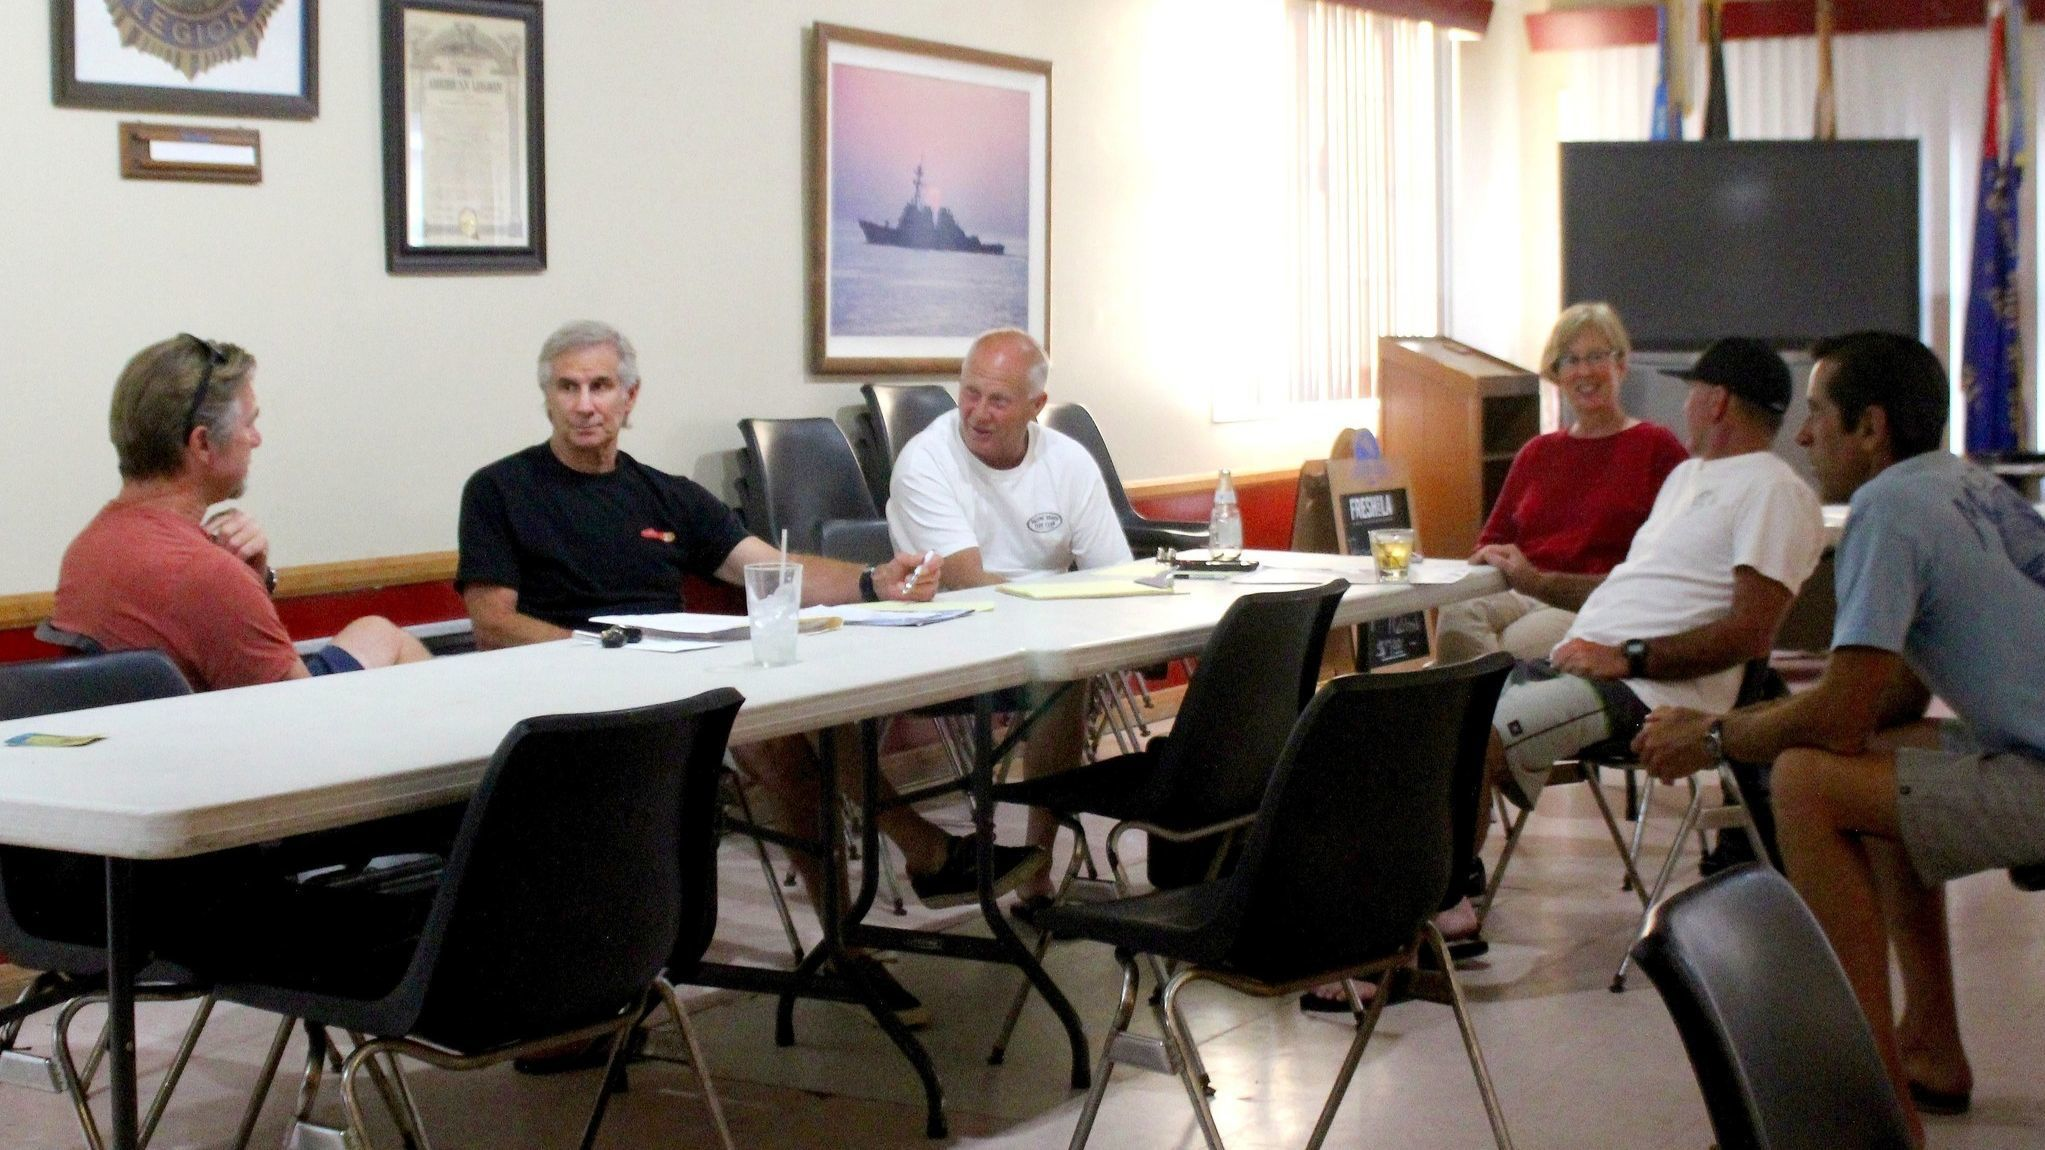 Chris Volk, Ron Greene, Bob Peacock, Teresa Burdick, Dan Dodd and Vince Bodie hold a recent Pacific Beach Surf Club meeting at VFW Post 5985 on Turquoise Street.